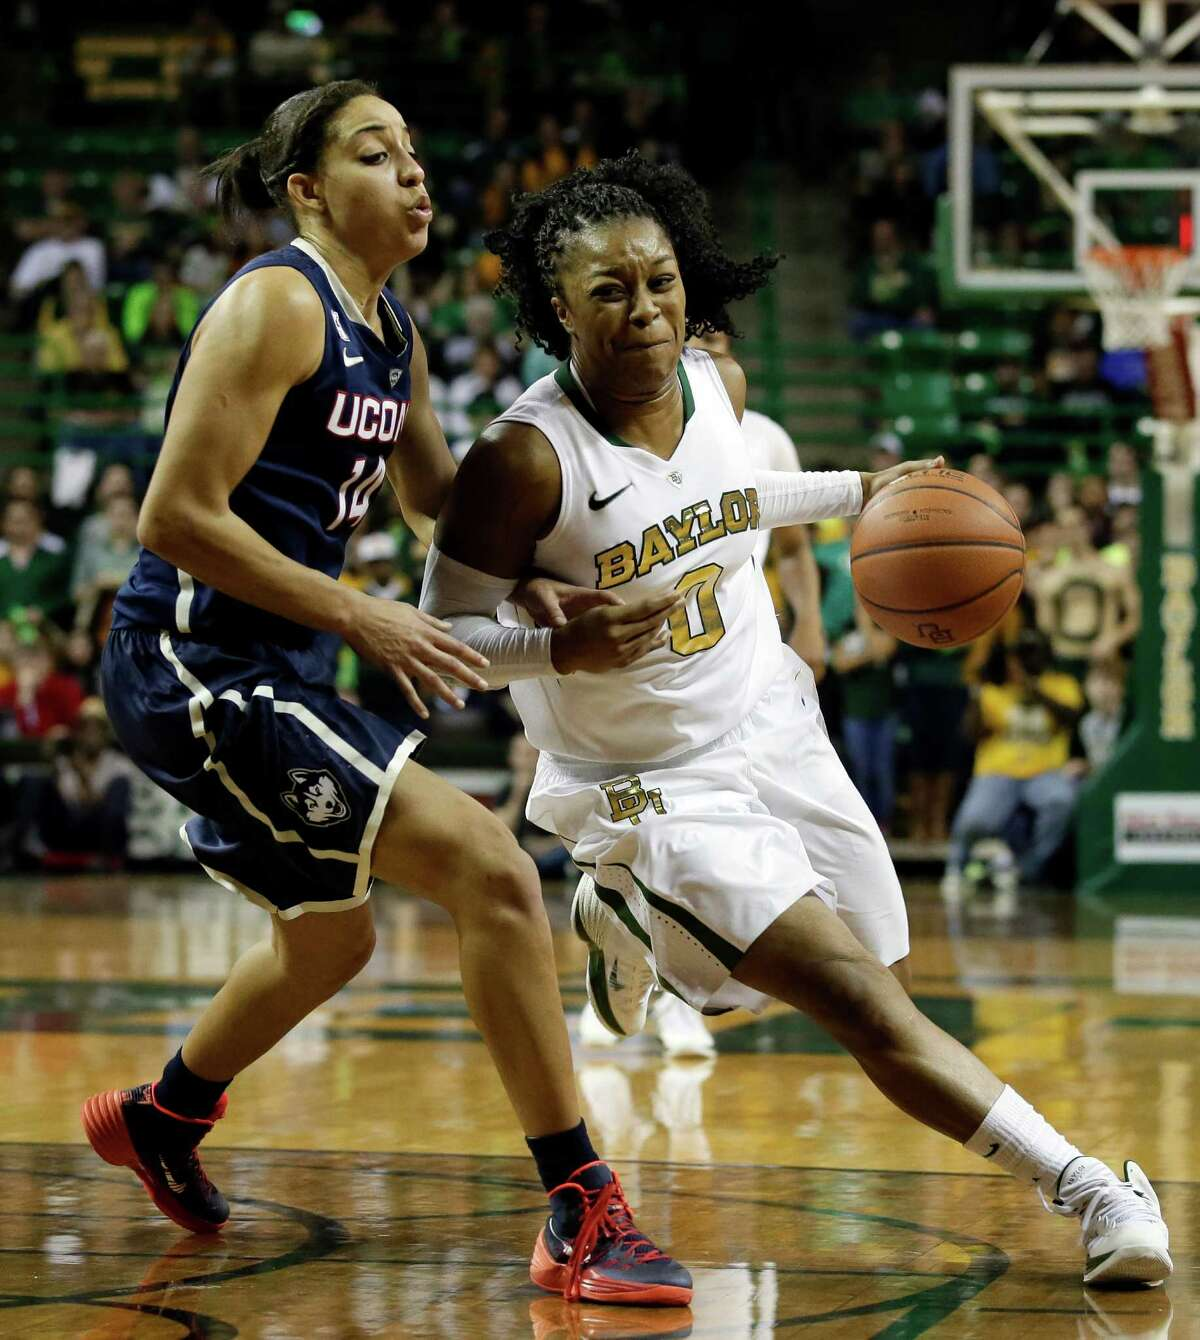 Connecticut's Bria Hartley, left, defends against a drive by Baylor's Odyssey Sims (0) in the second half of an NCAA college basketball game, Monday, Jan. 13, 2014, in Waco, Texas. Sims had a game-high 20-points in the 66-55 Baylor loss.